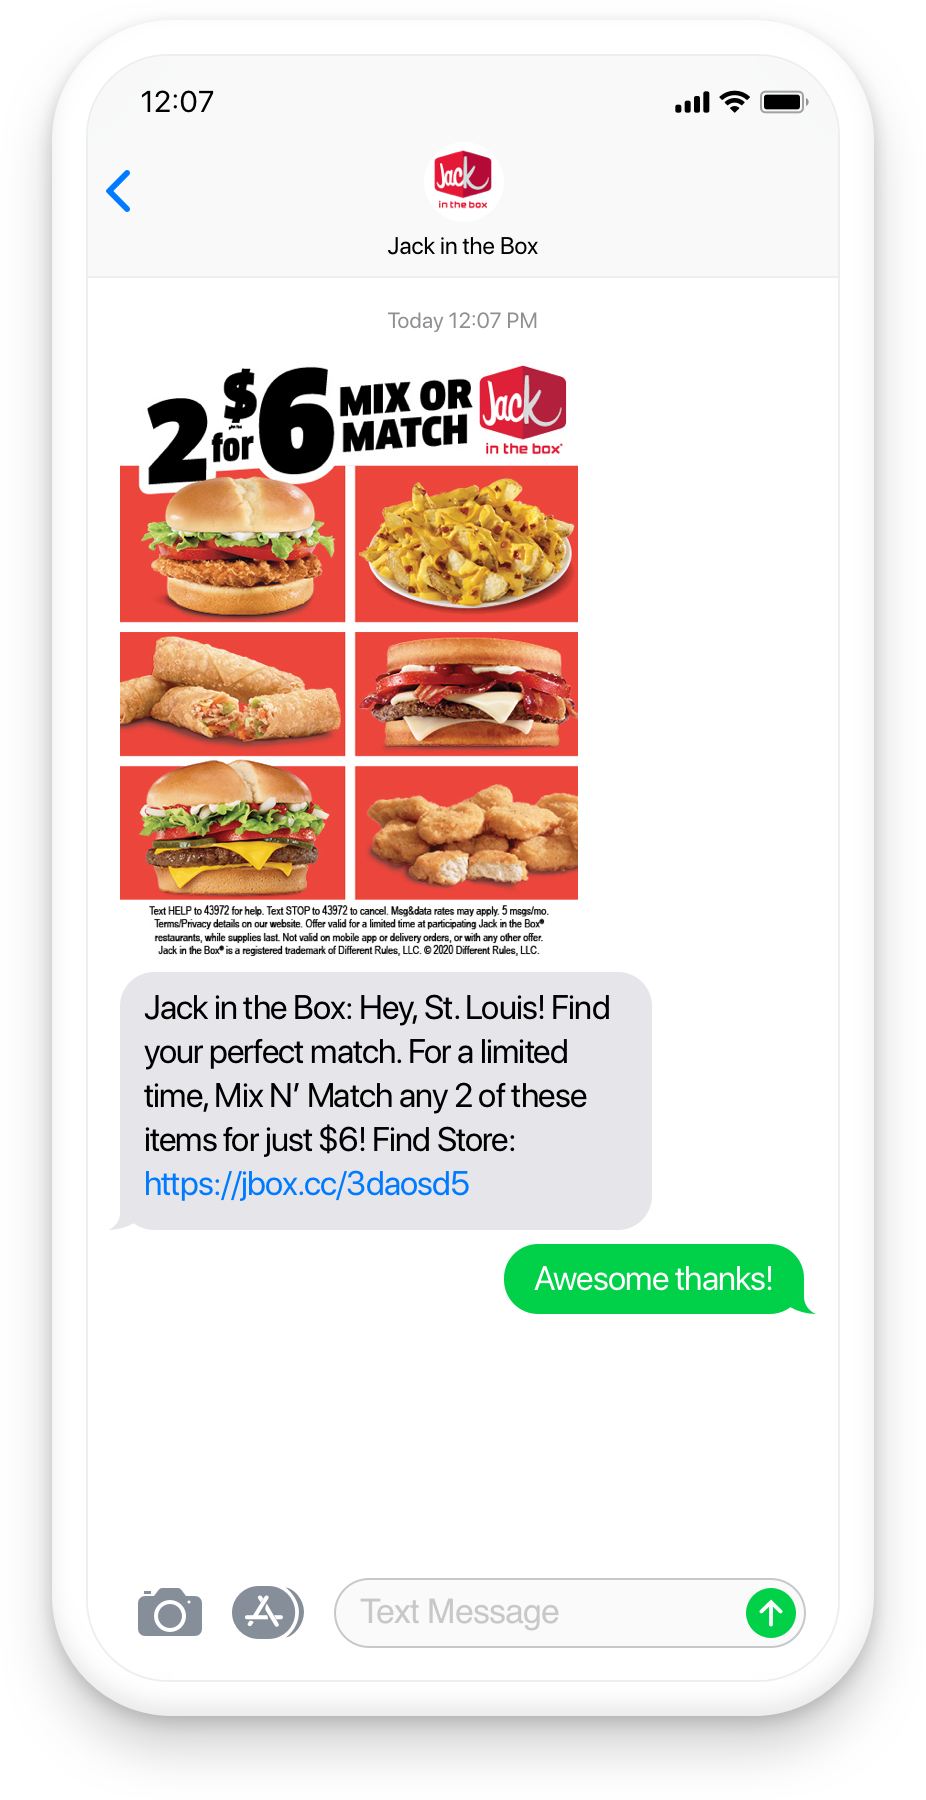 jack in the box segmentation mock